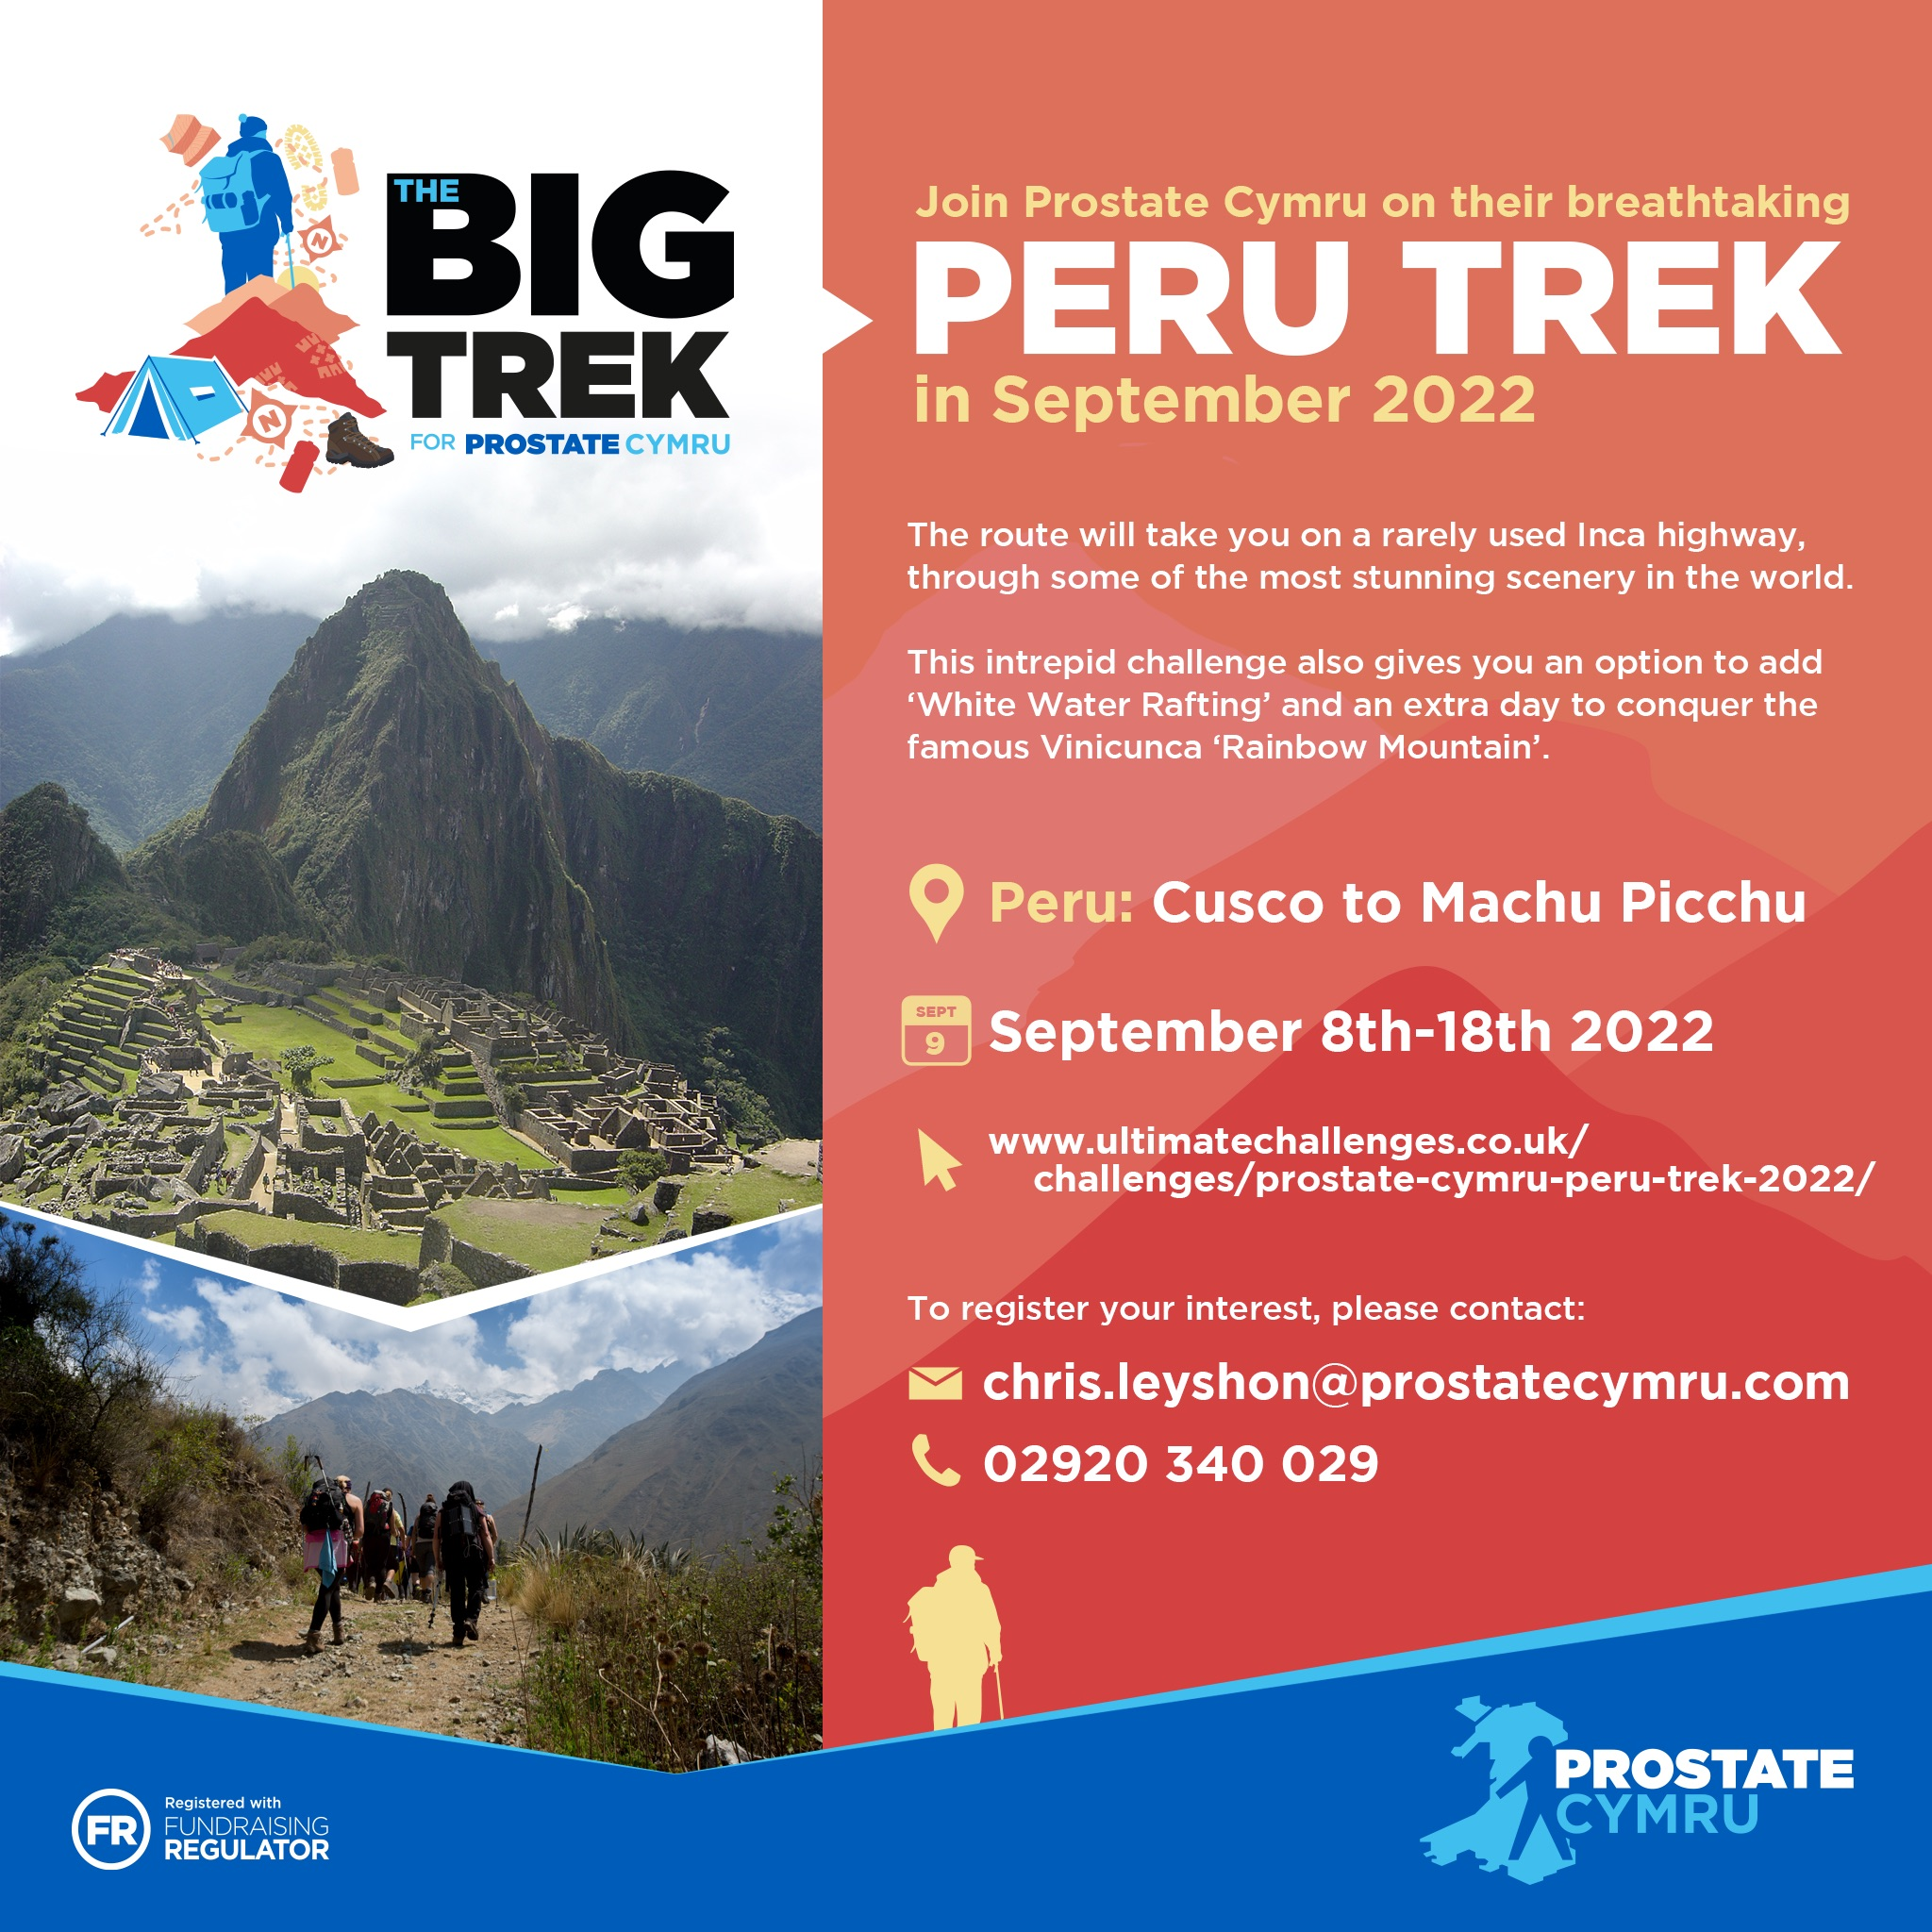 Prostate Cymru announce The Big Trek to Machu Picchu.